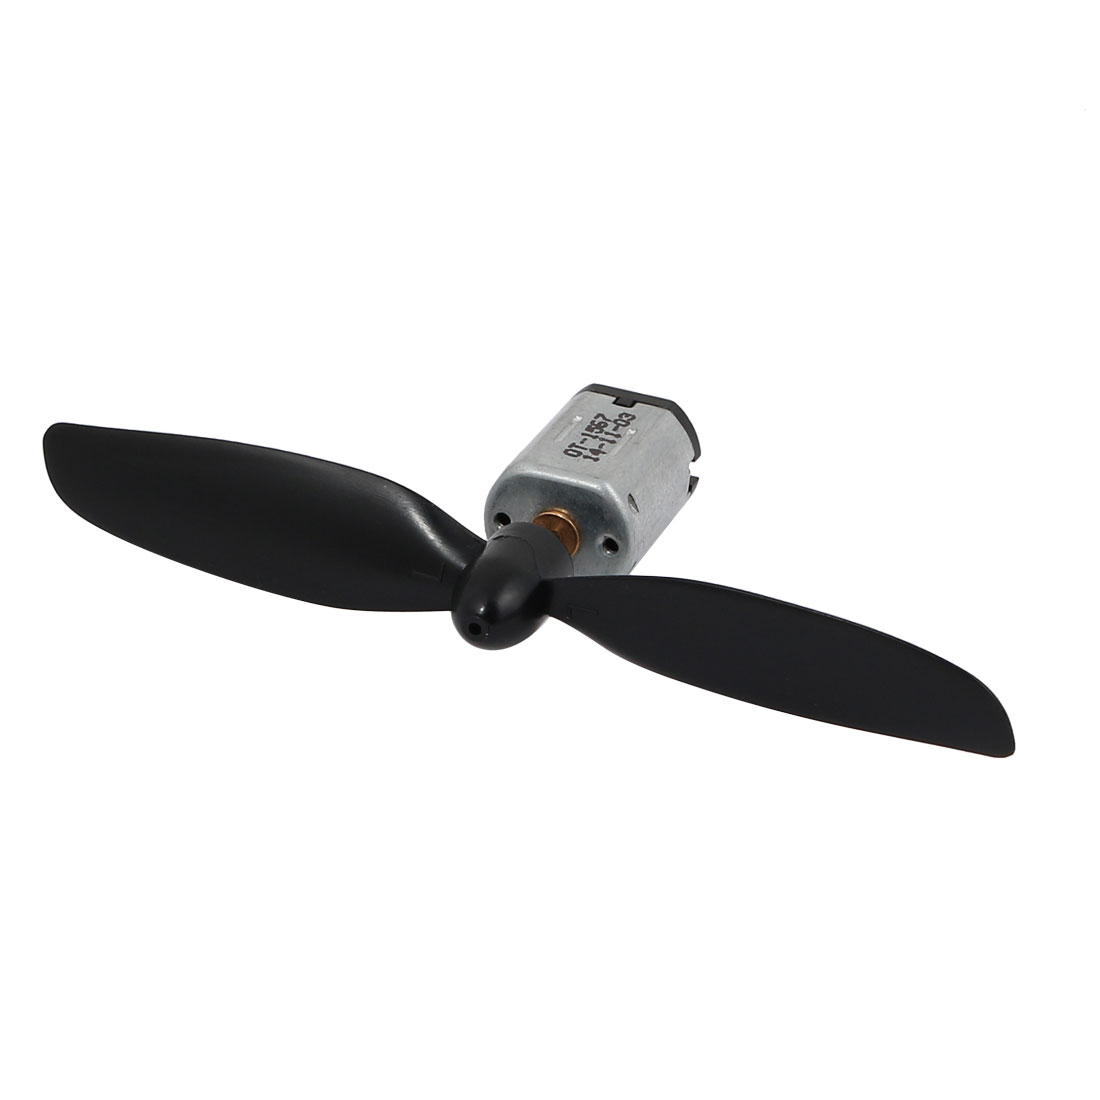 DC 4.5V 31000RPM N20 High Speed Strong Magnetic Motor w Helicopter CCW Propeller